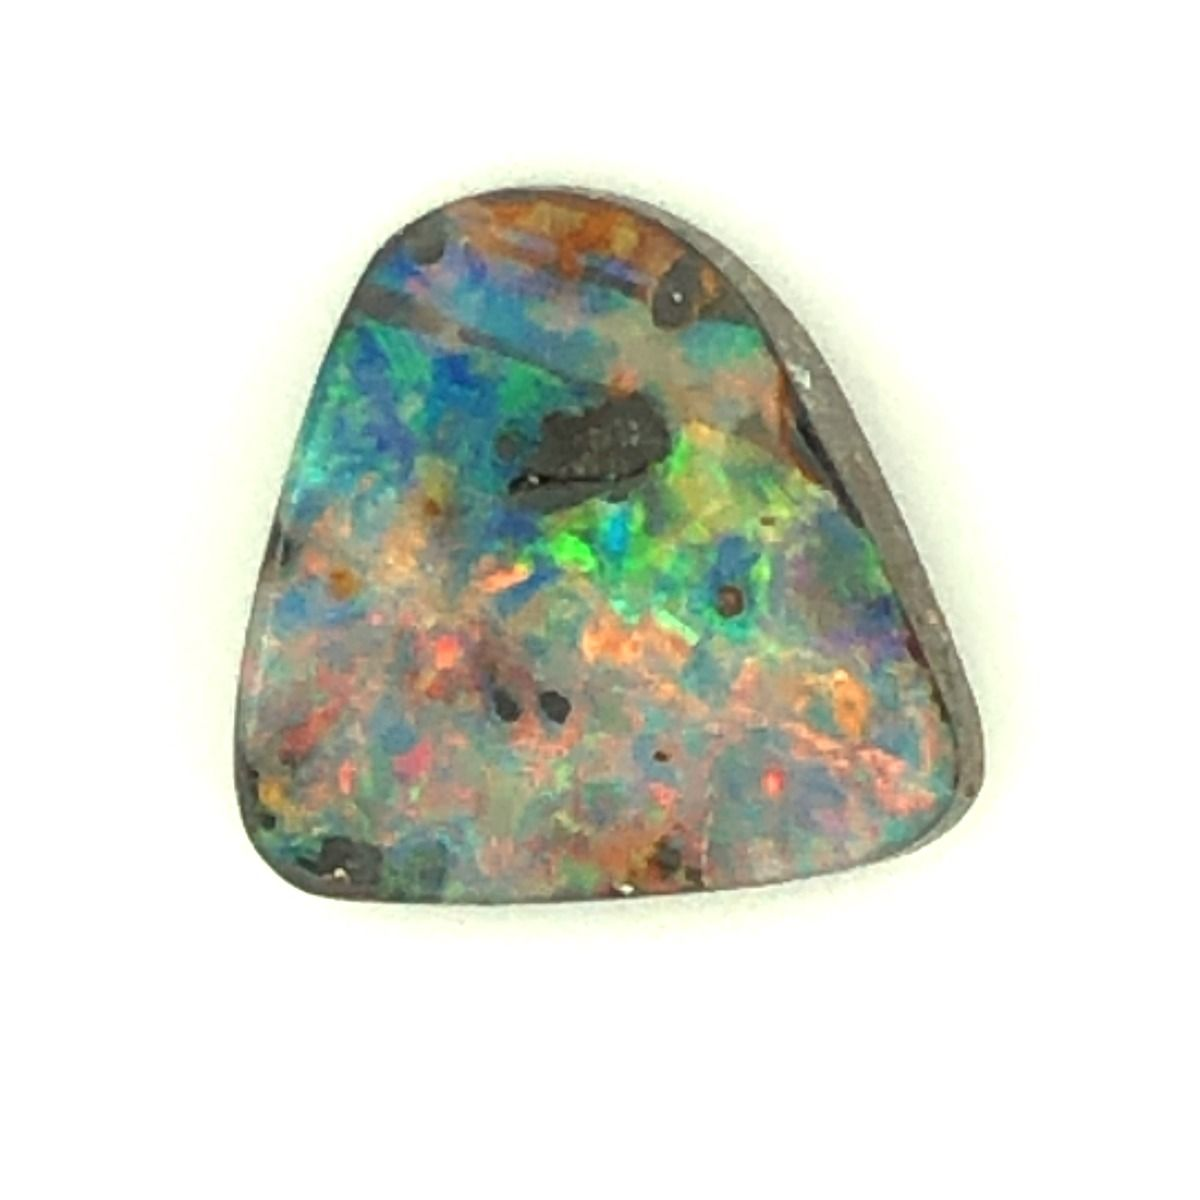 Solid Boulder Opal stone 5.19ct